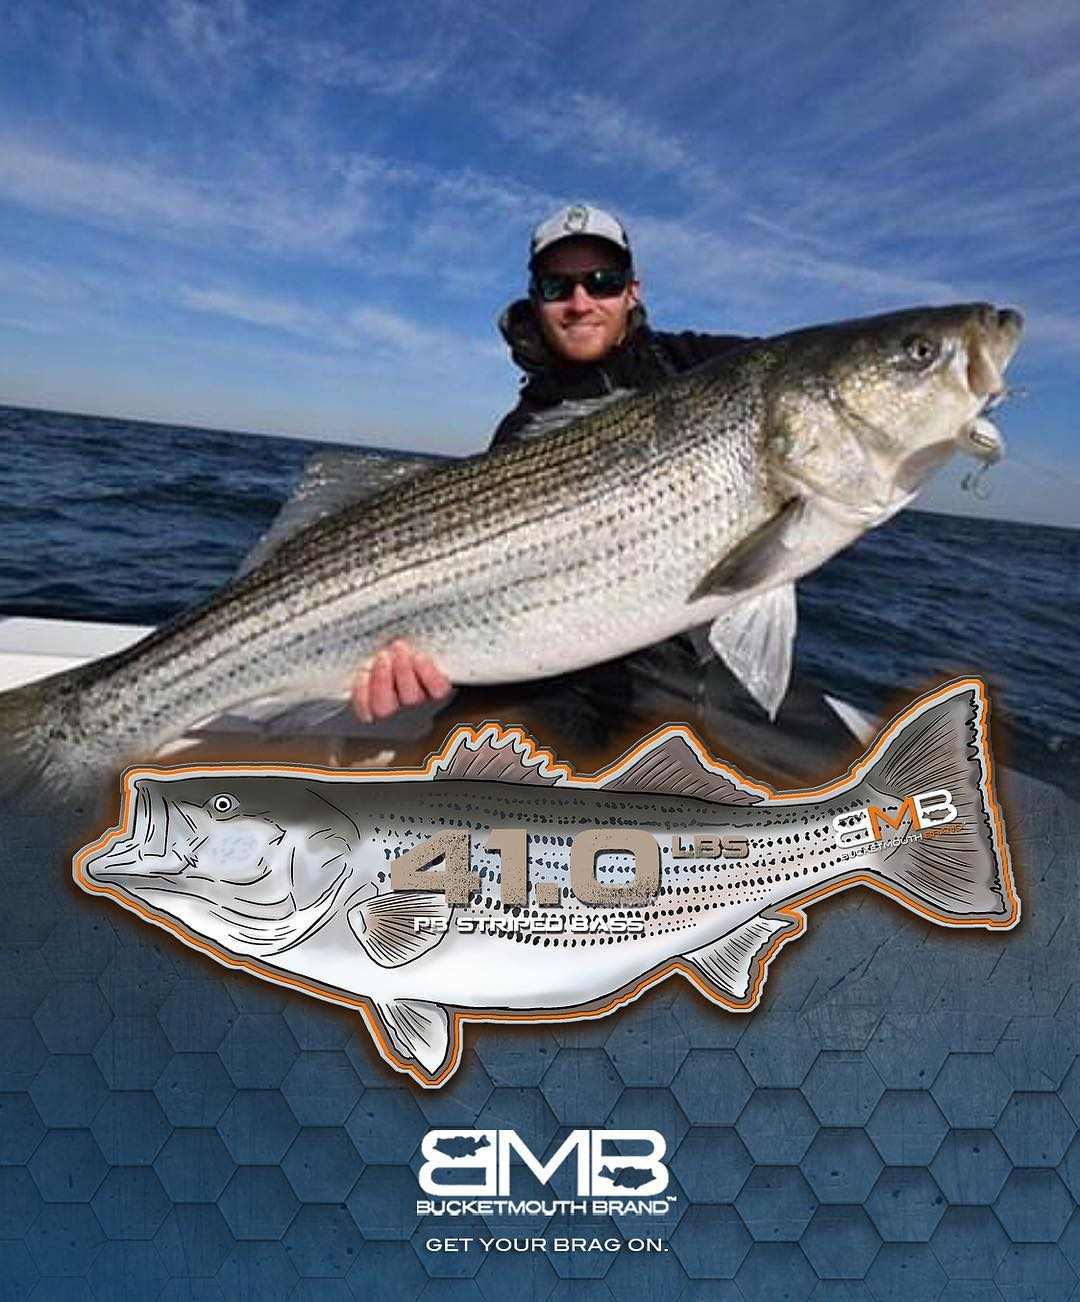 Friday Fatty!  caught his 41 lb. pb monster striper on top water! That's worth b